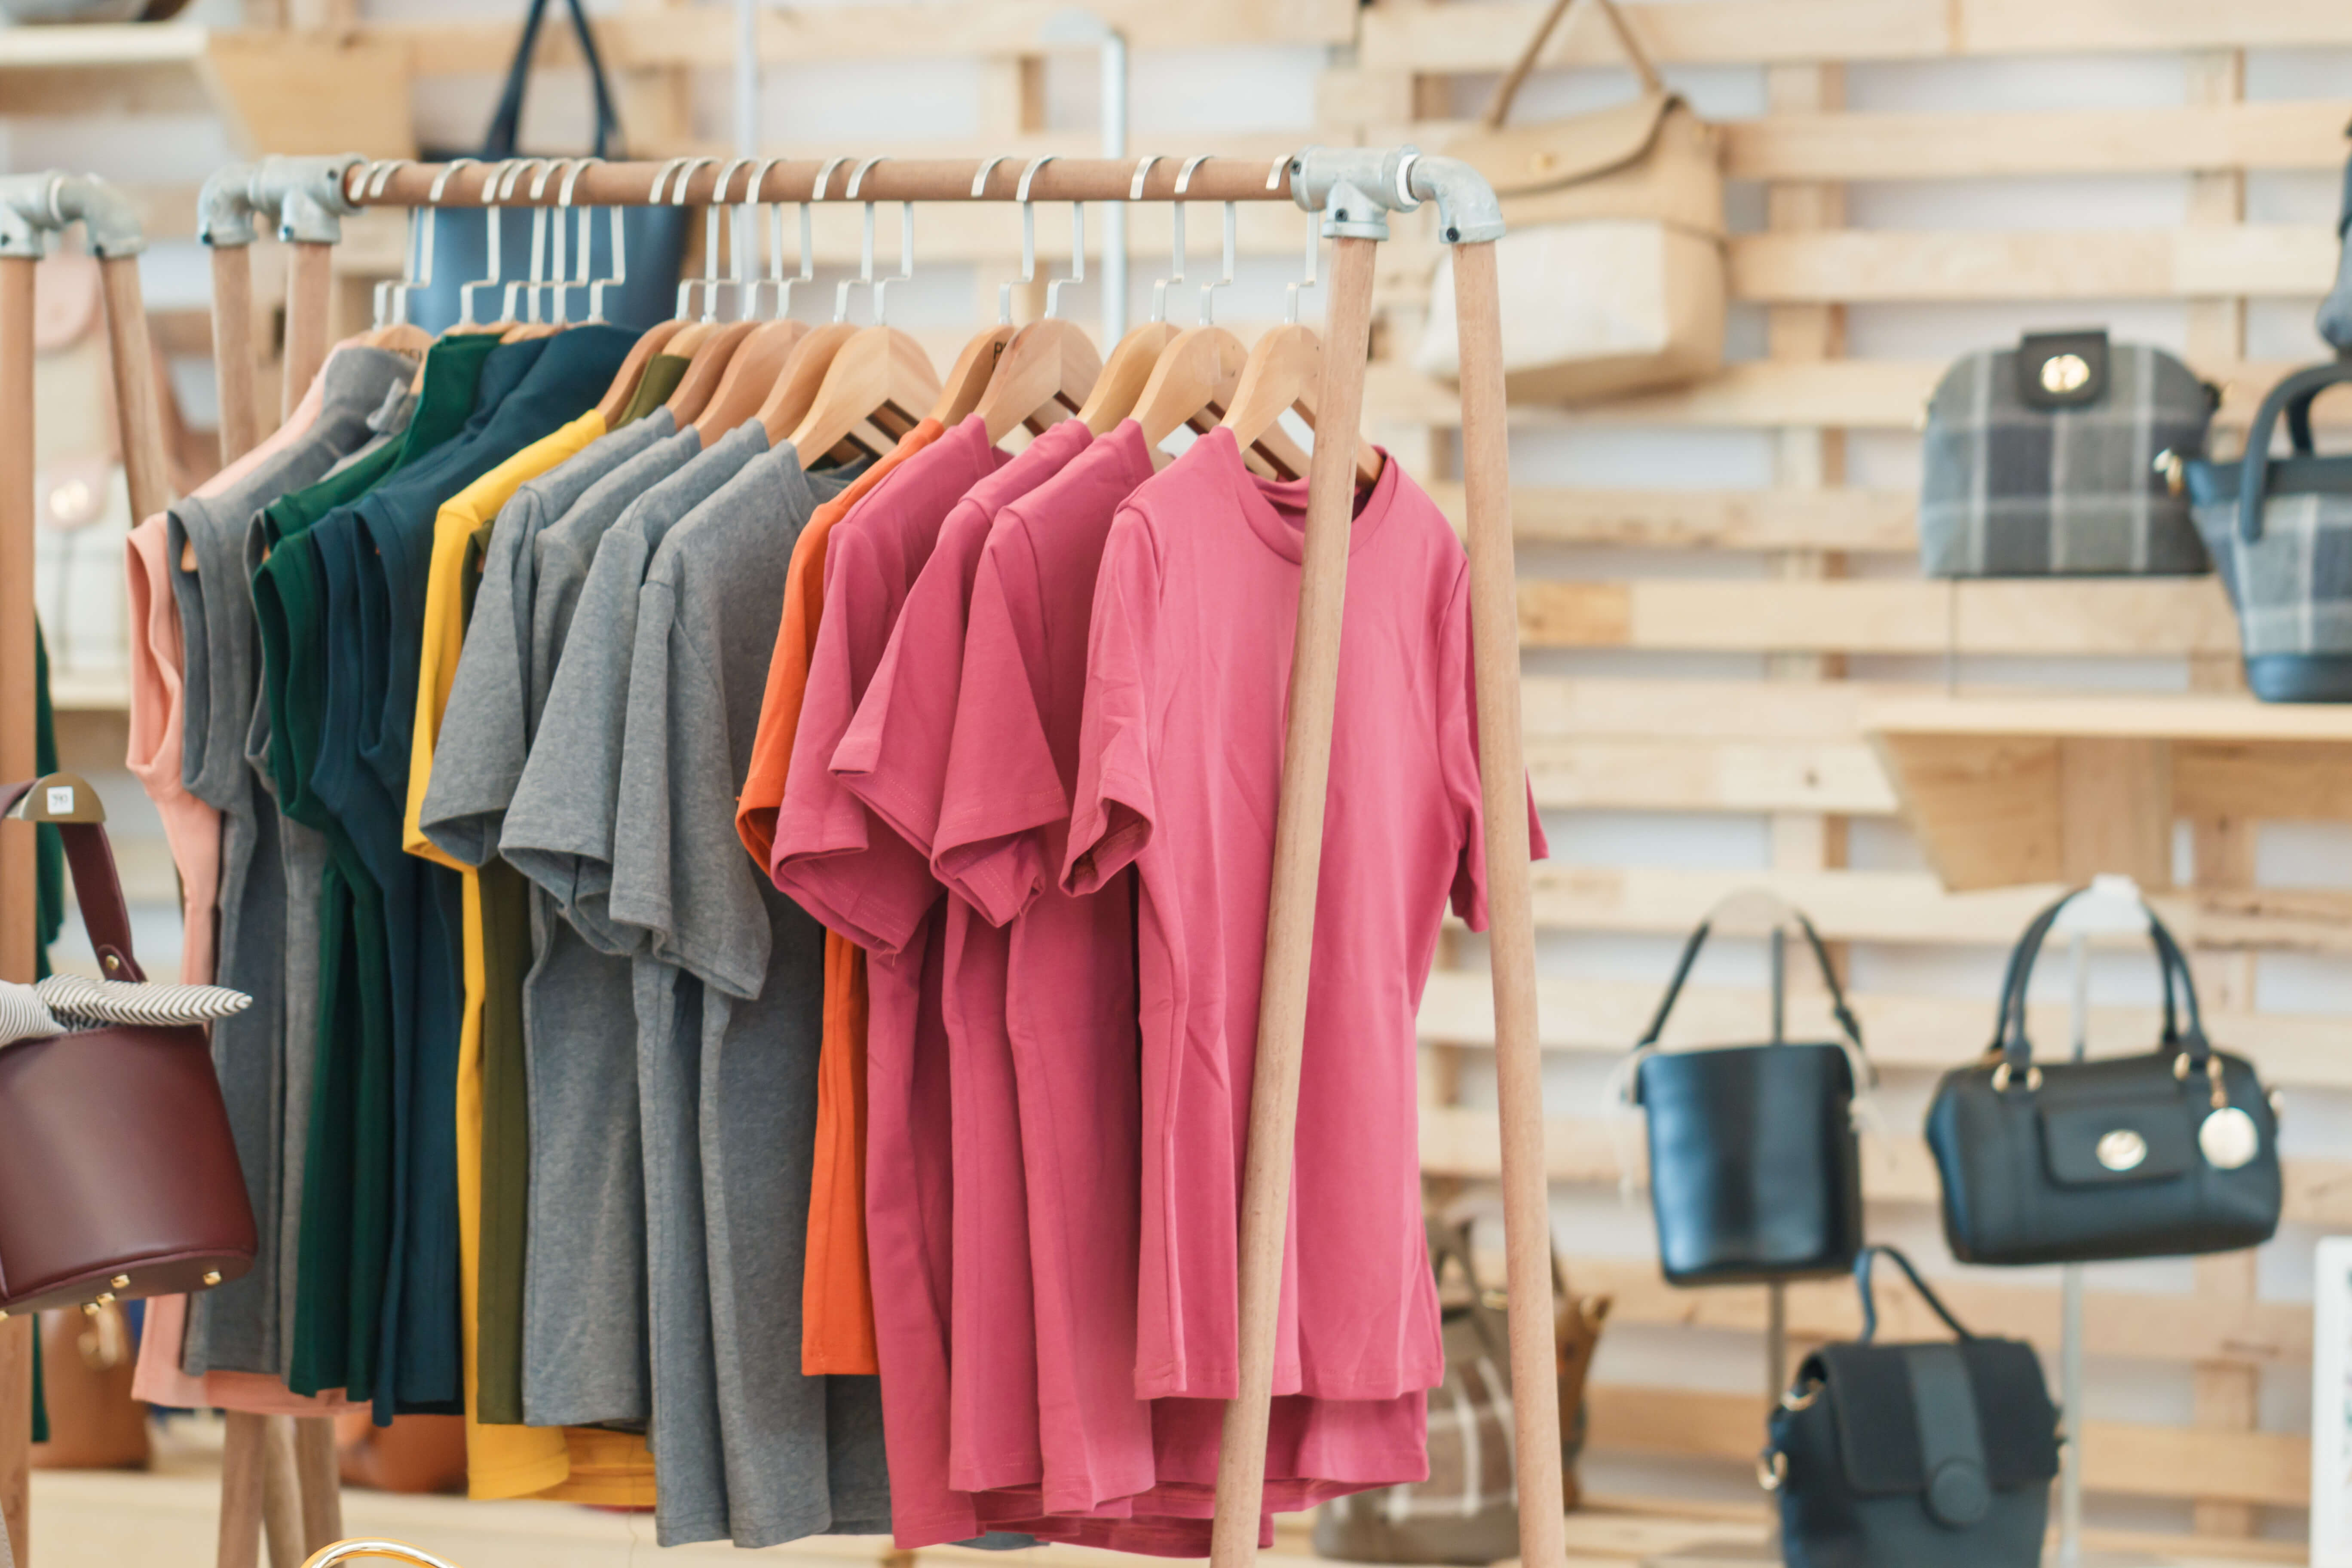 An Intelligent Fashion Replenishment System Based on Data Analytics and Expert Judgment